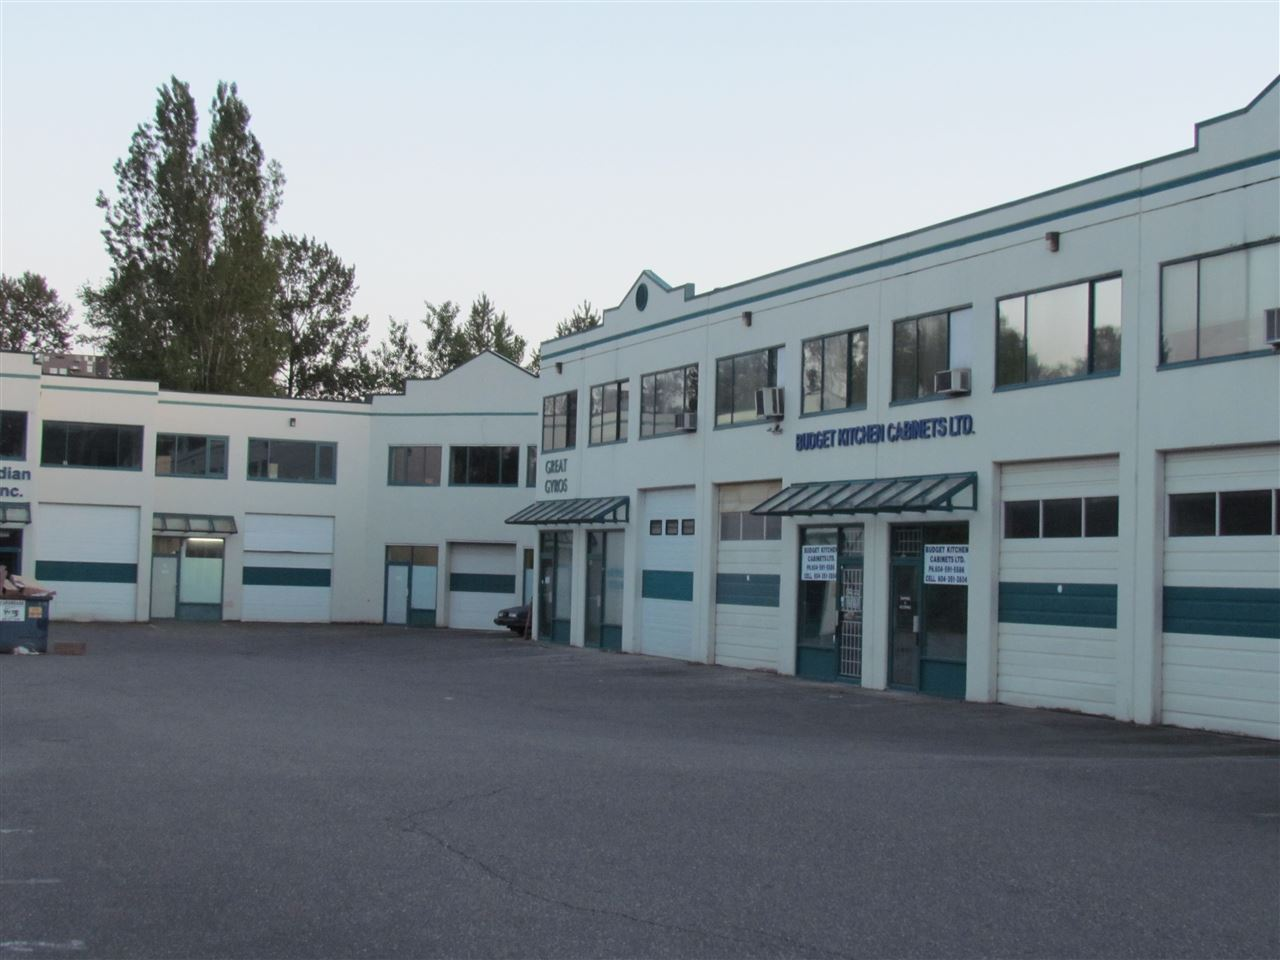 Main Photo: 9 13140 88 Avenue in Surrey: Queen Mary Park Surrey Commercial for sale : MLS®# C8000671